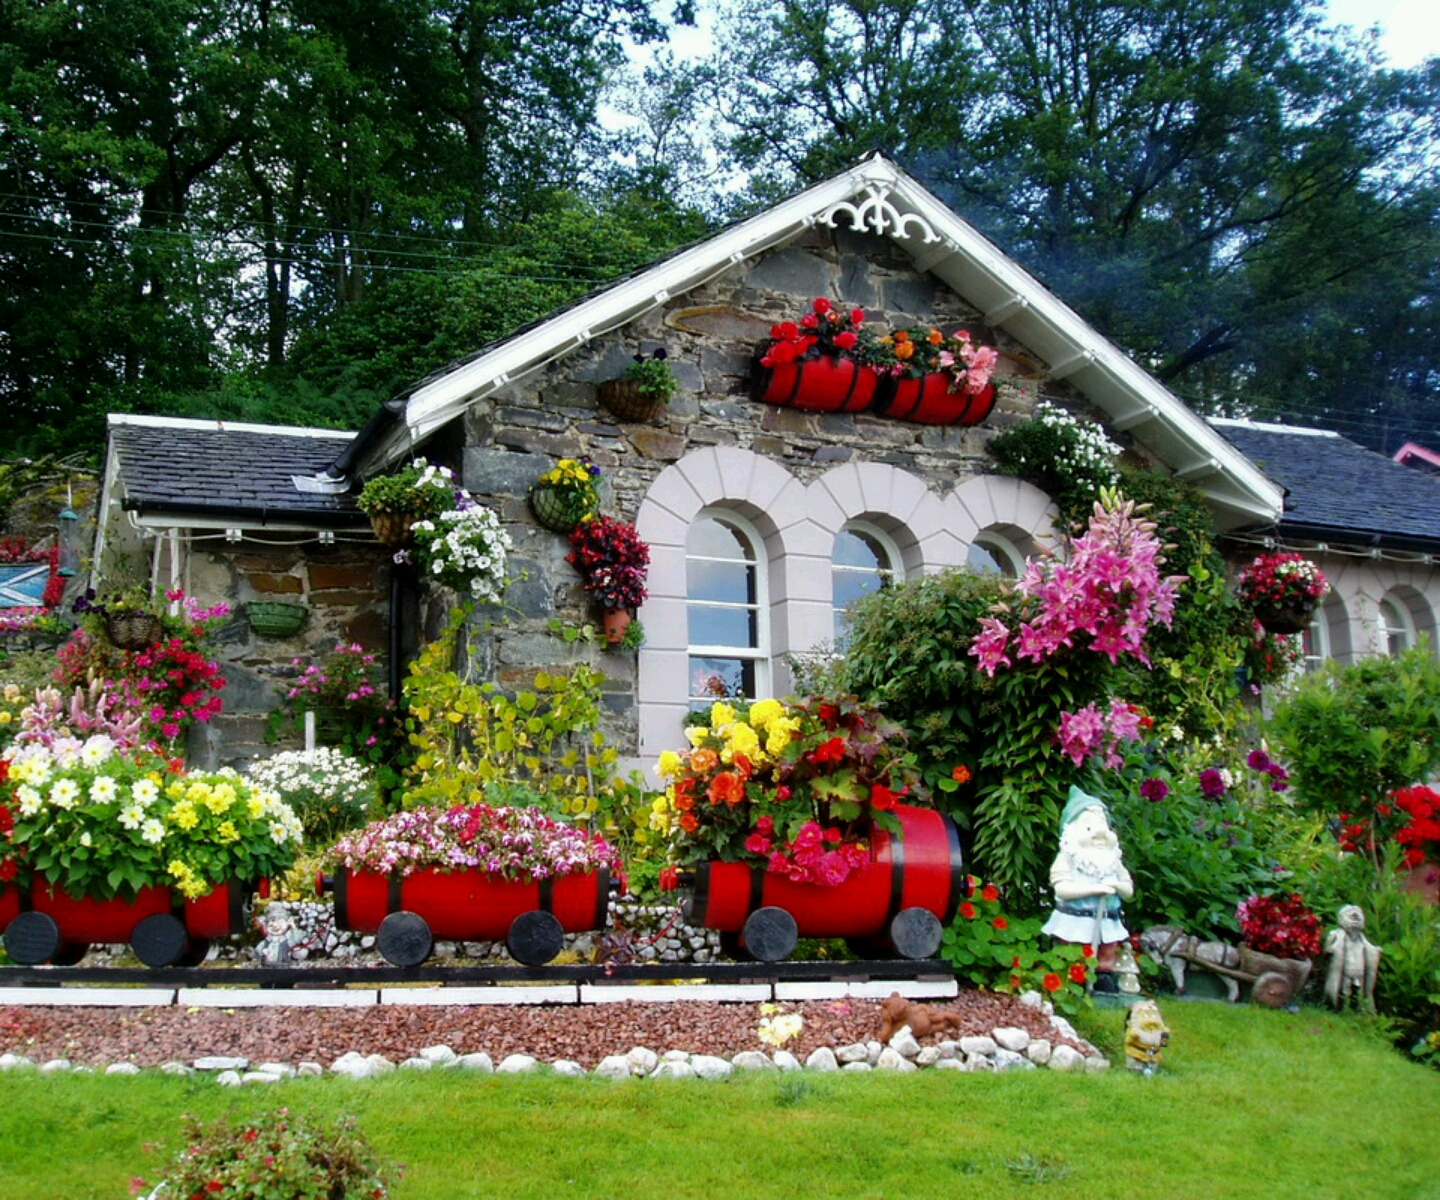 Cheap Ways To Do Your Garden: Cheapest Ways To Make Your Garden Beautiful